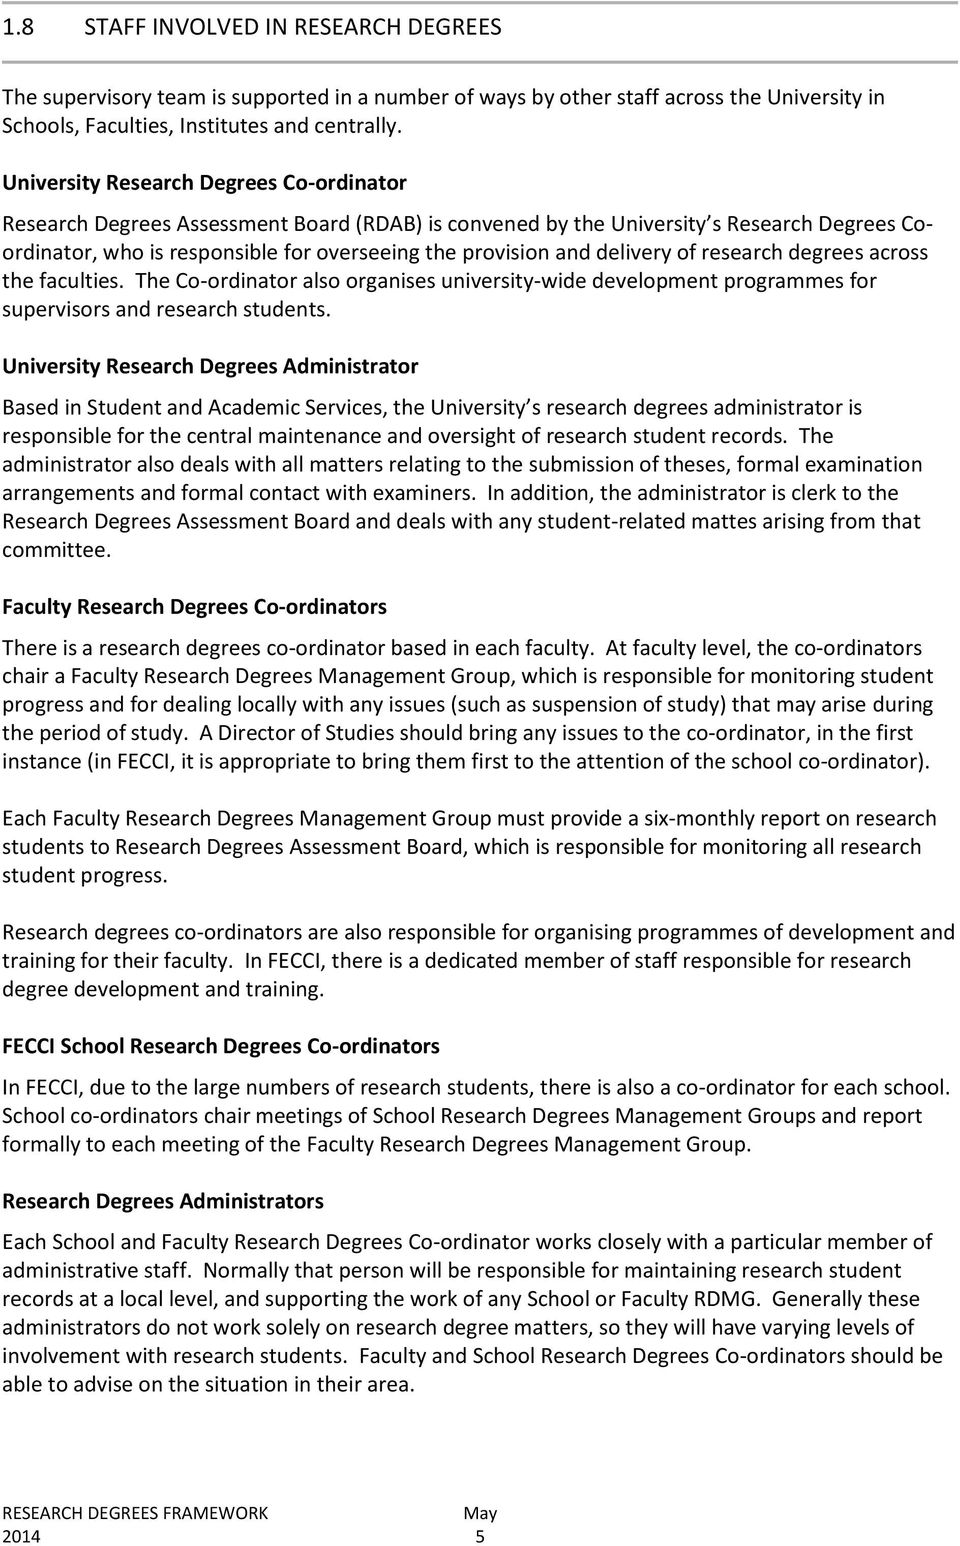 delivery of research degrees across the faculties. The Co-ordinator also organises university-wide development programmes for supervisors and research students.